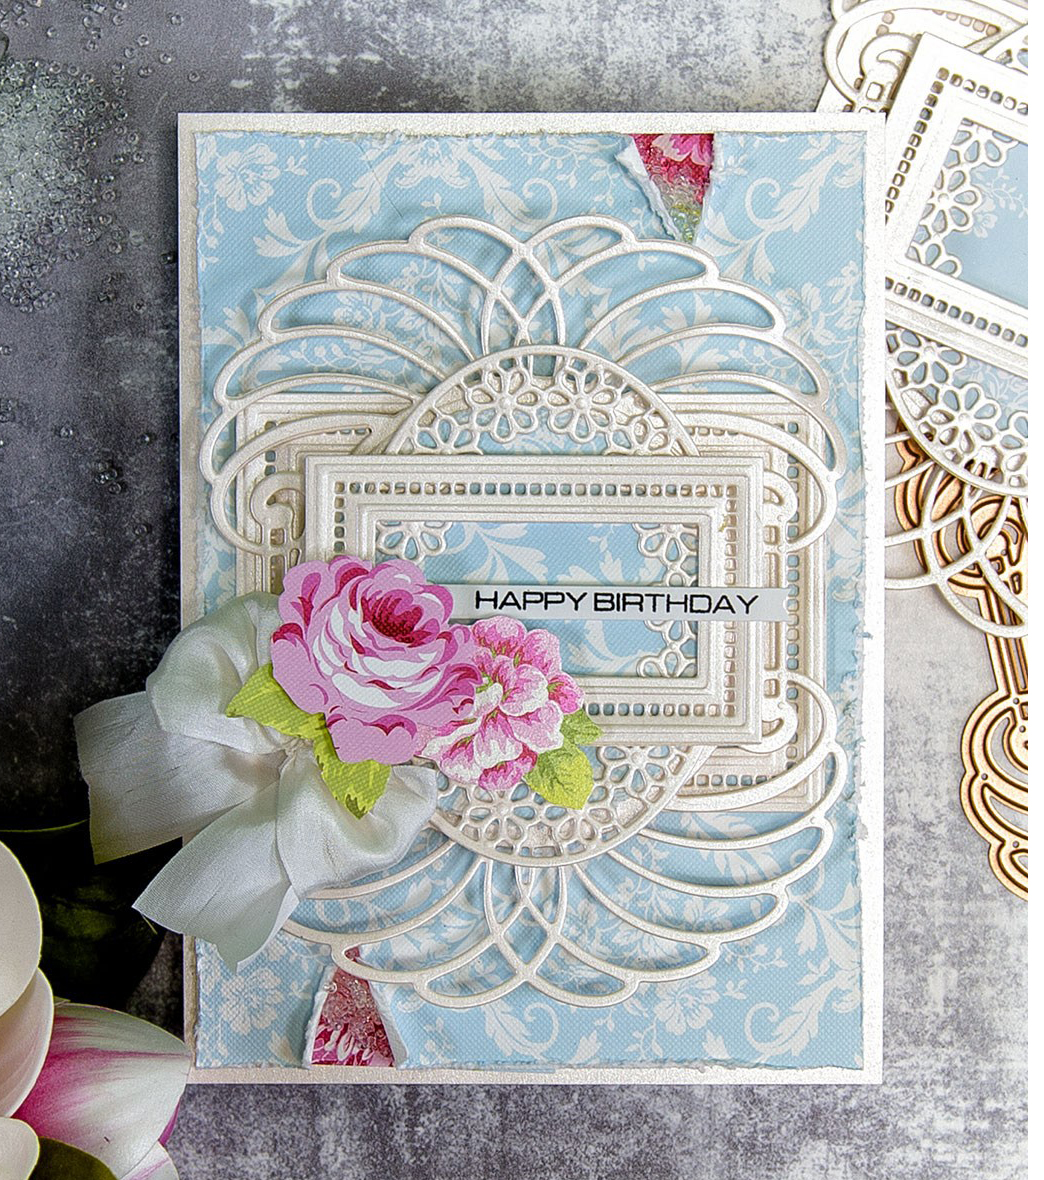 Intricate scrapbook birthday card designed by Yana Smakula featuring Spellbinders dies